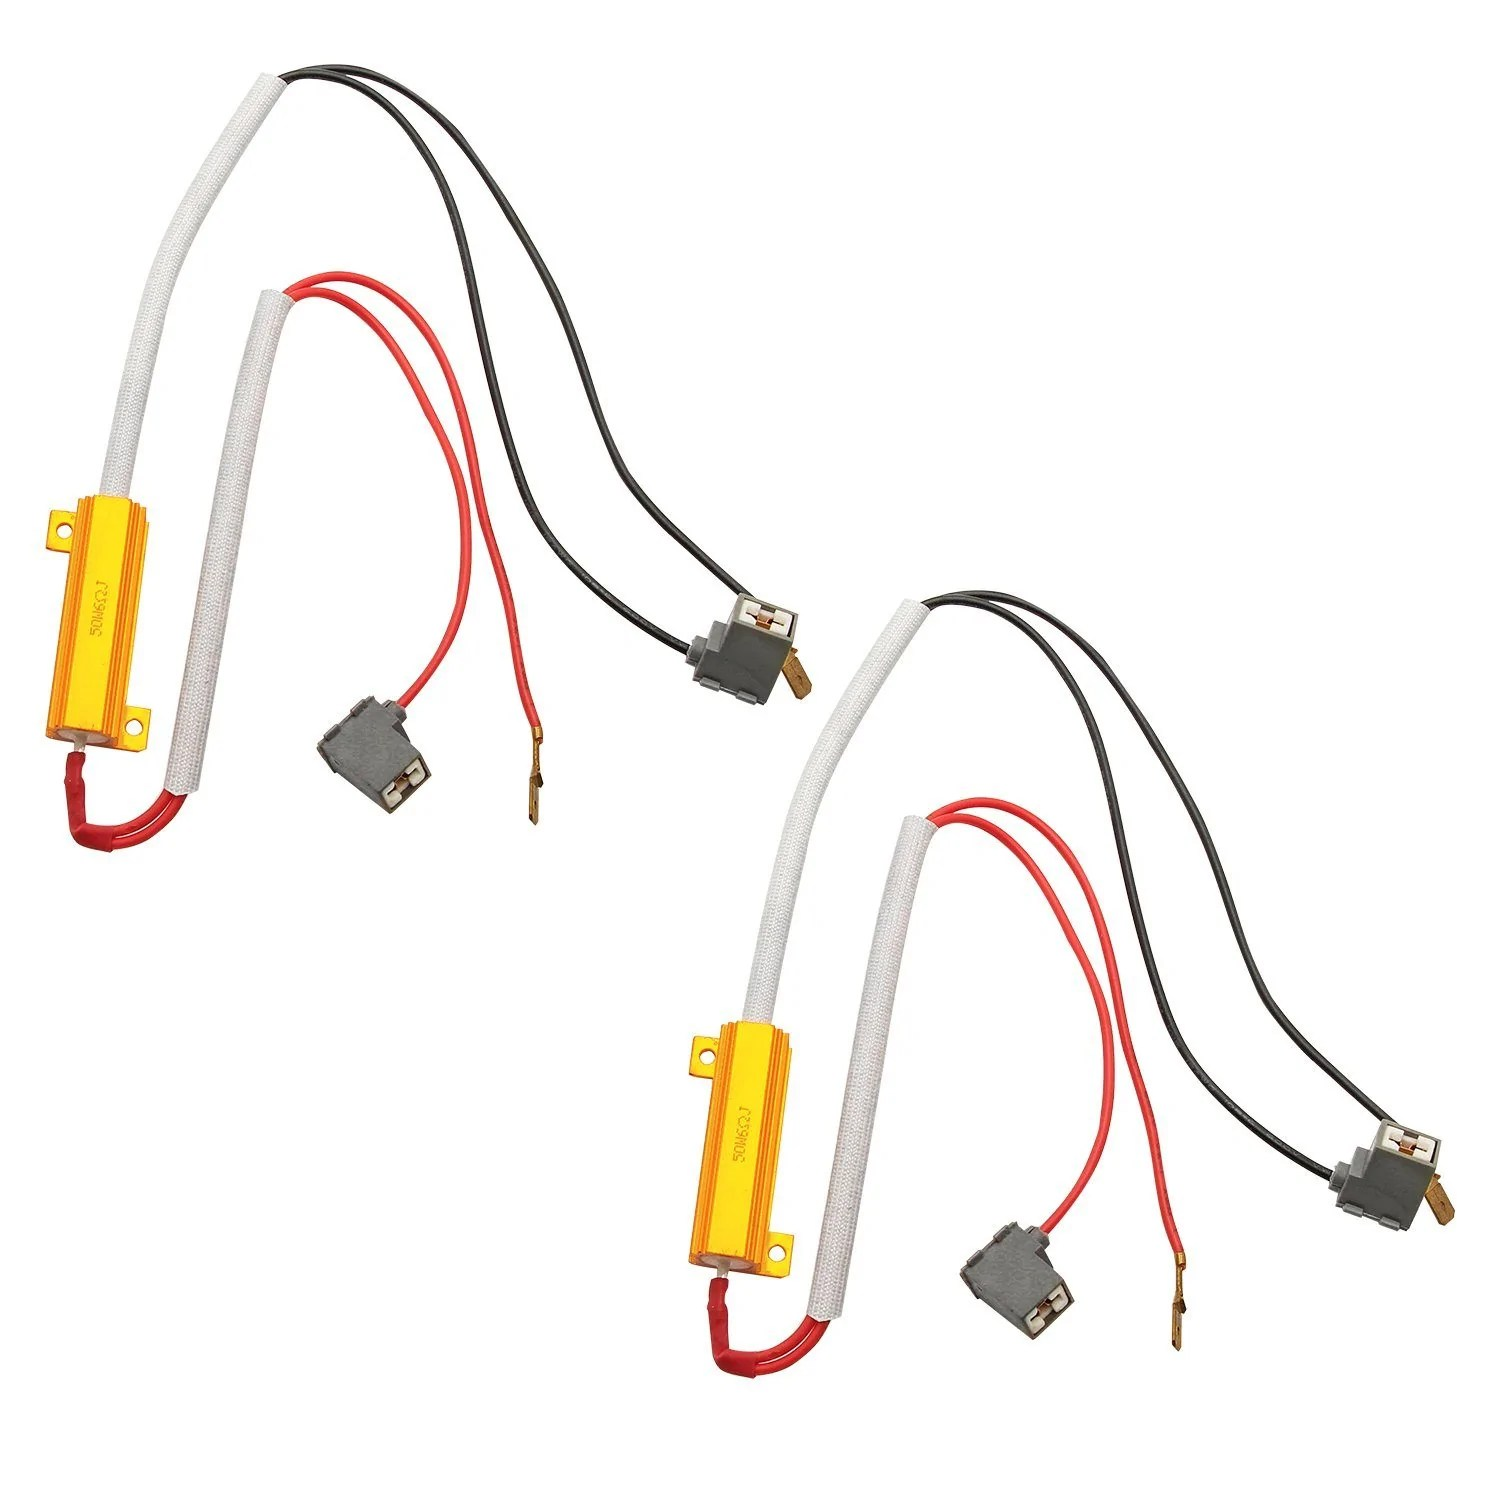 hight resolution of h1 h3 hid led 50w 6ohm resistor relay kit wiring harness adapter